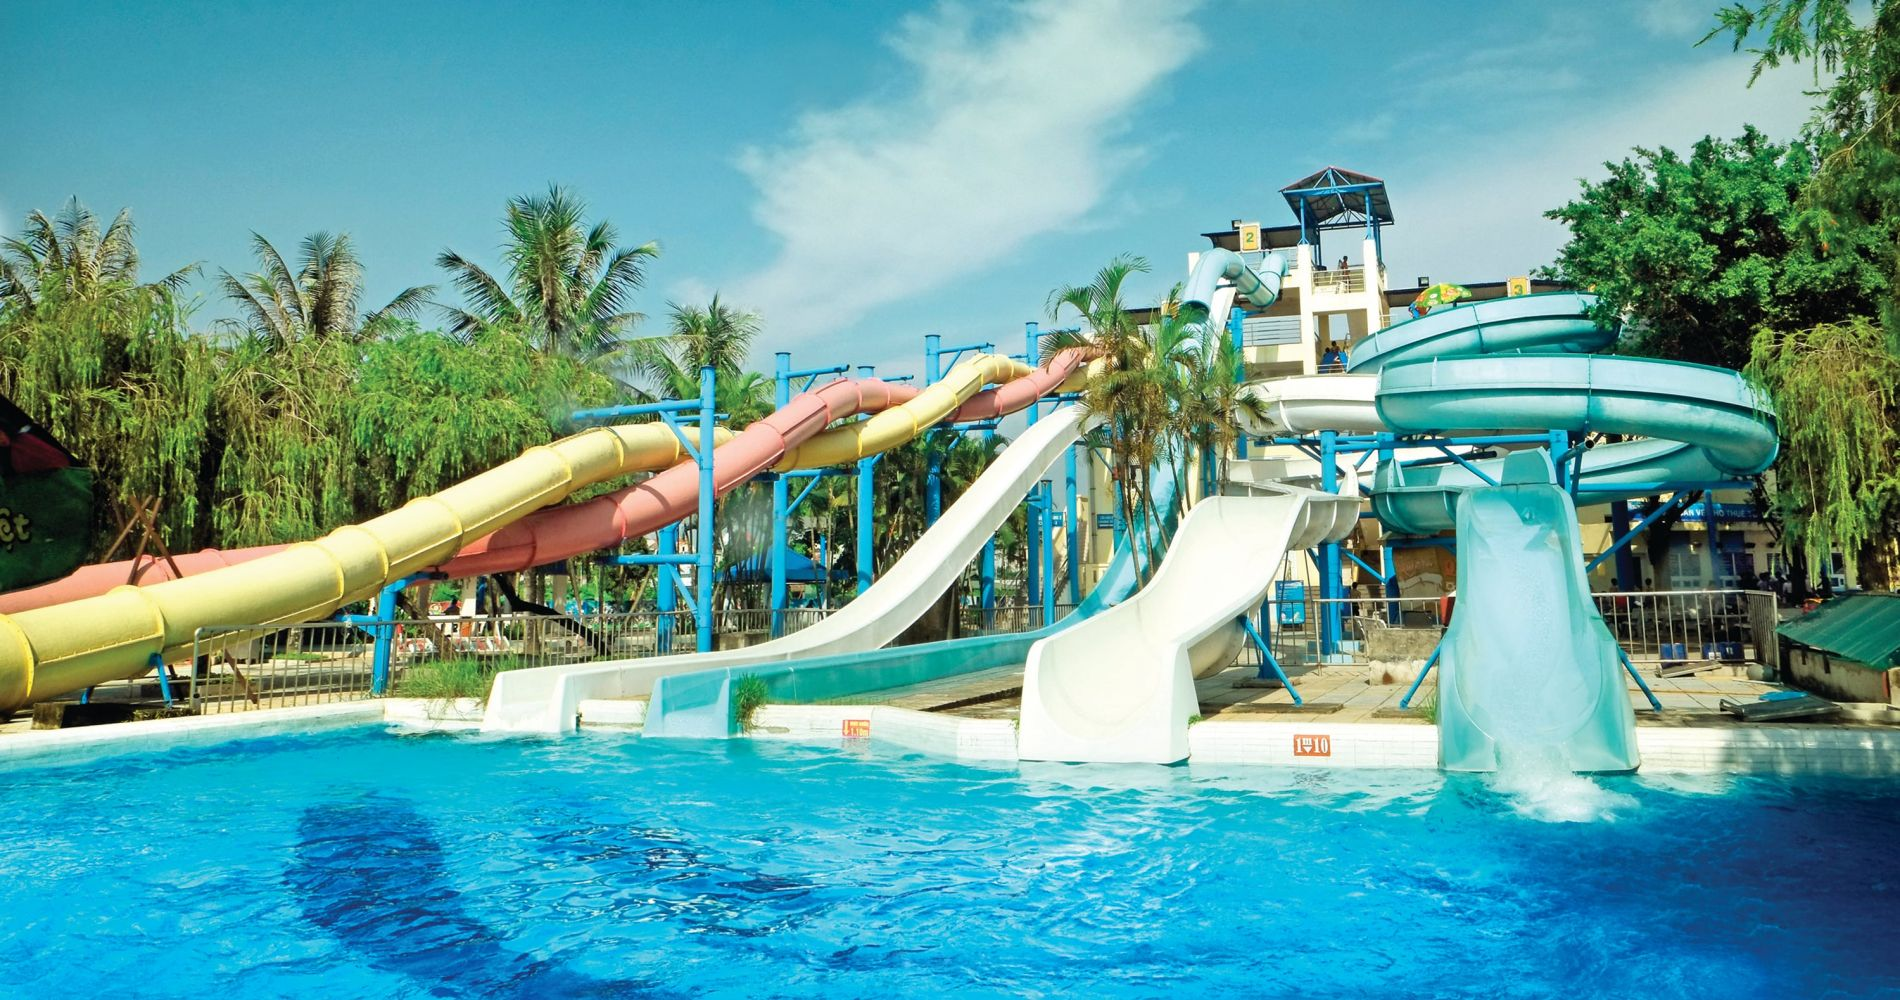 Visit CoCo Key Water Park and other Attractions